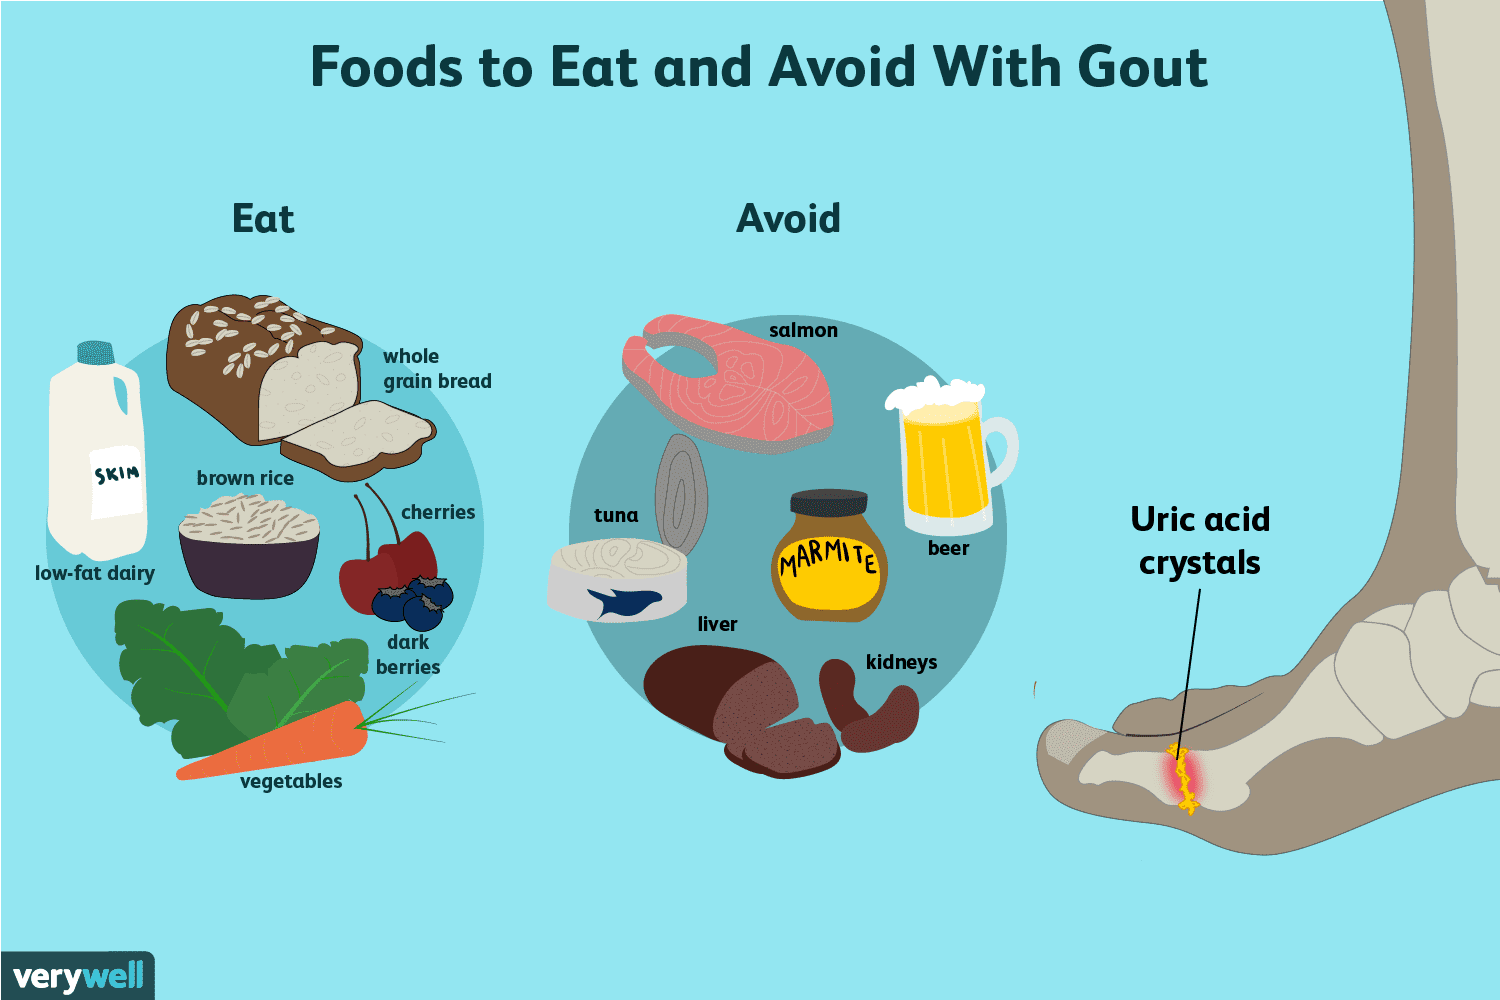 Foods to Eat and Avoid With Gout